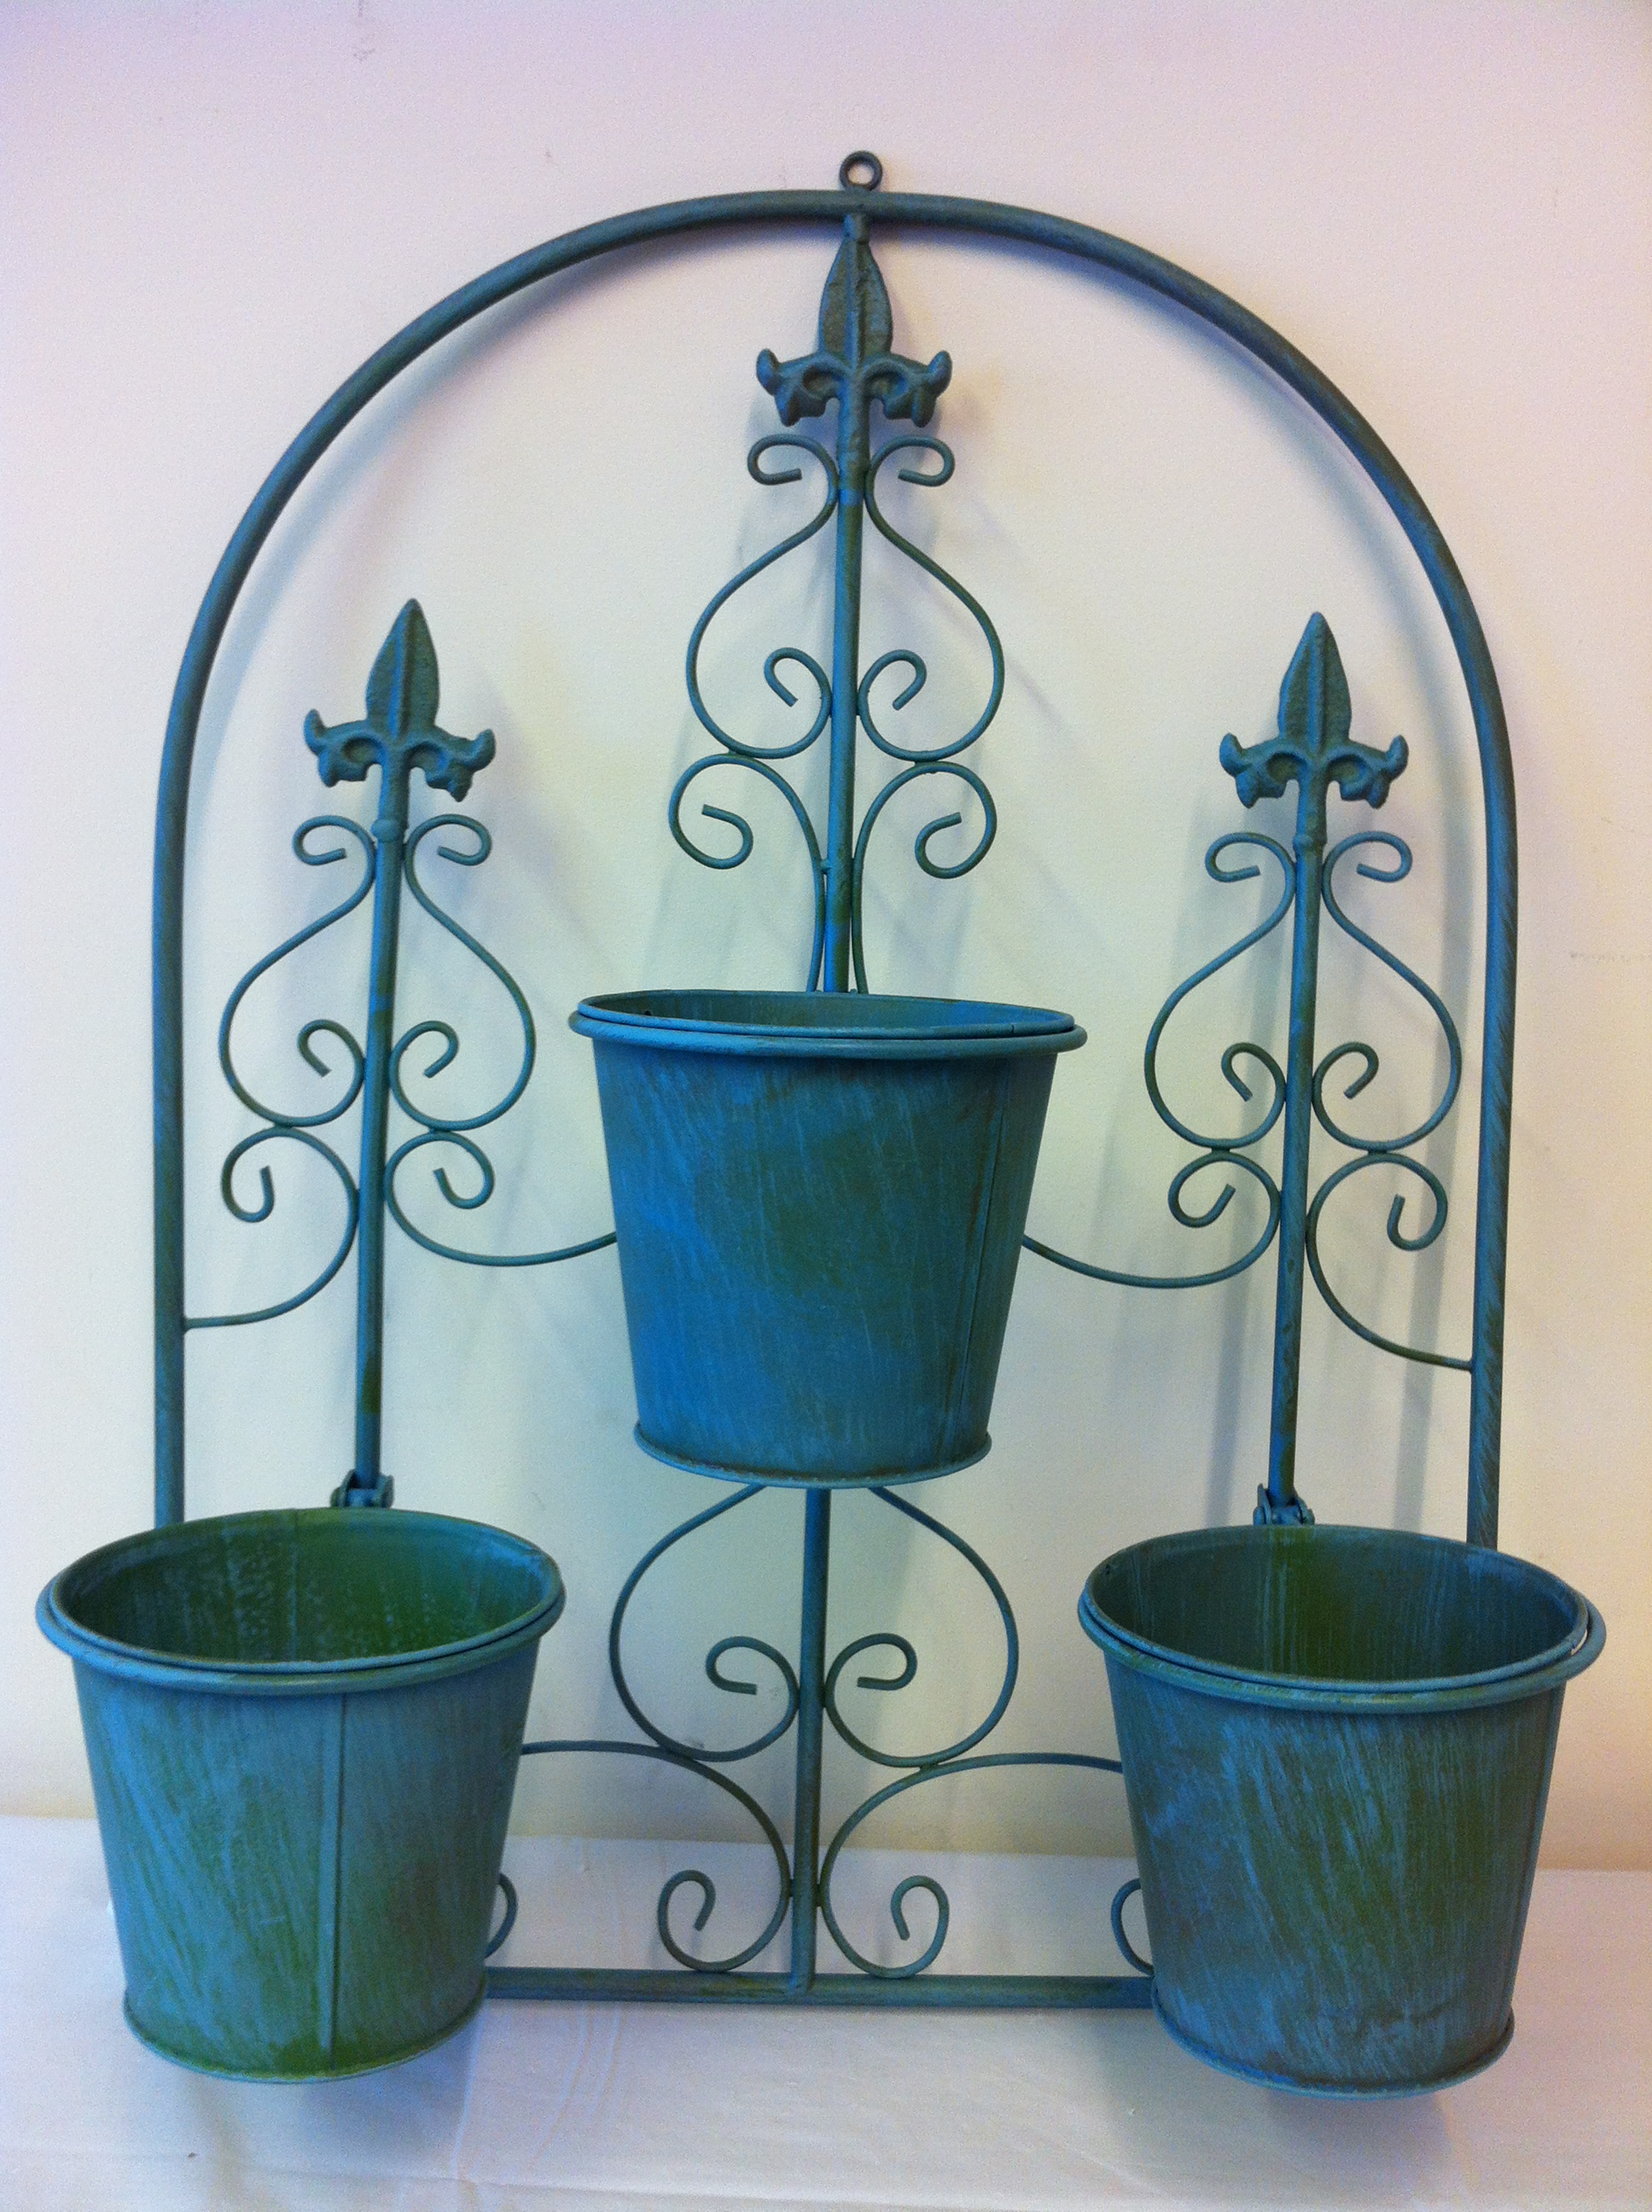 3 Pot Arch Planter Wall Hanging Garden Ornament Includes